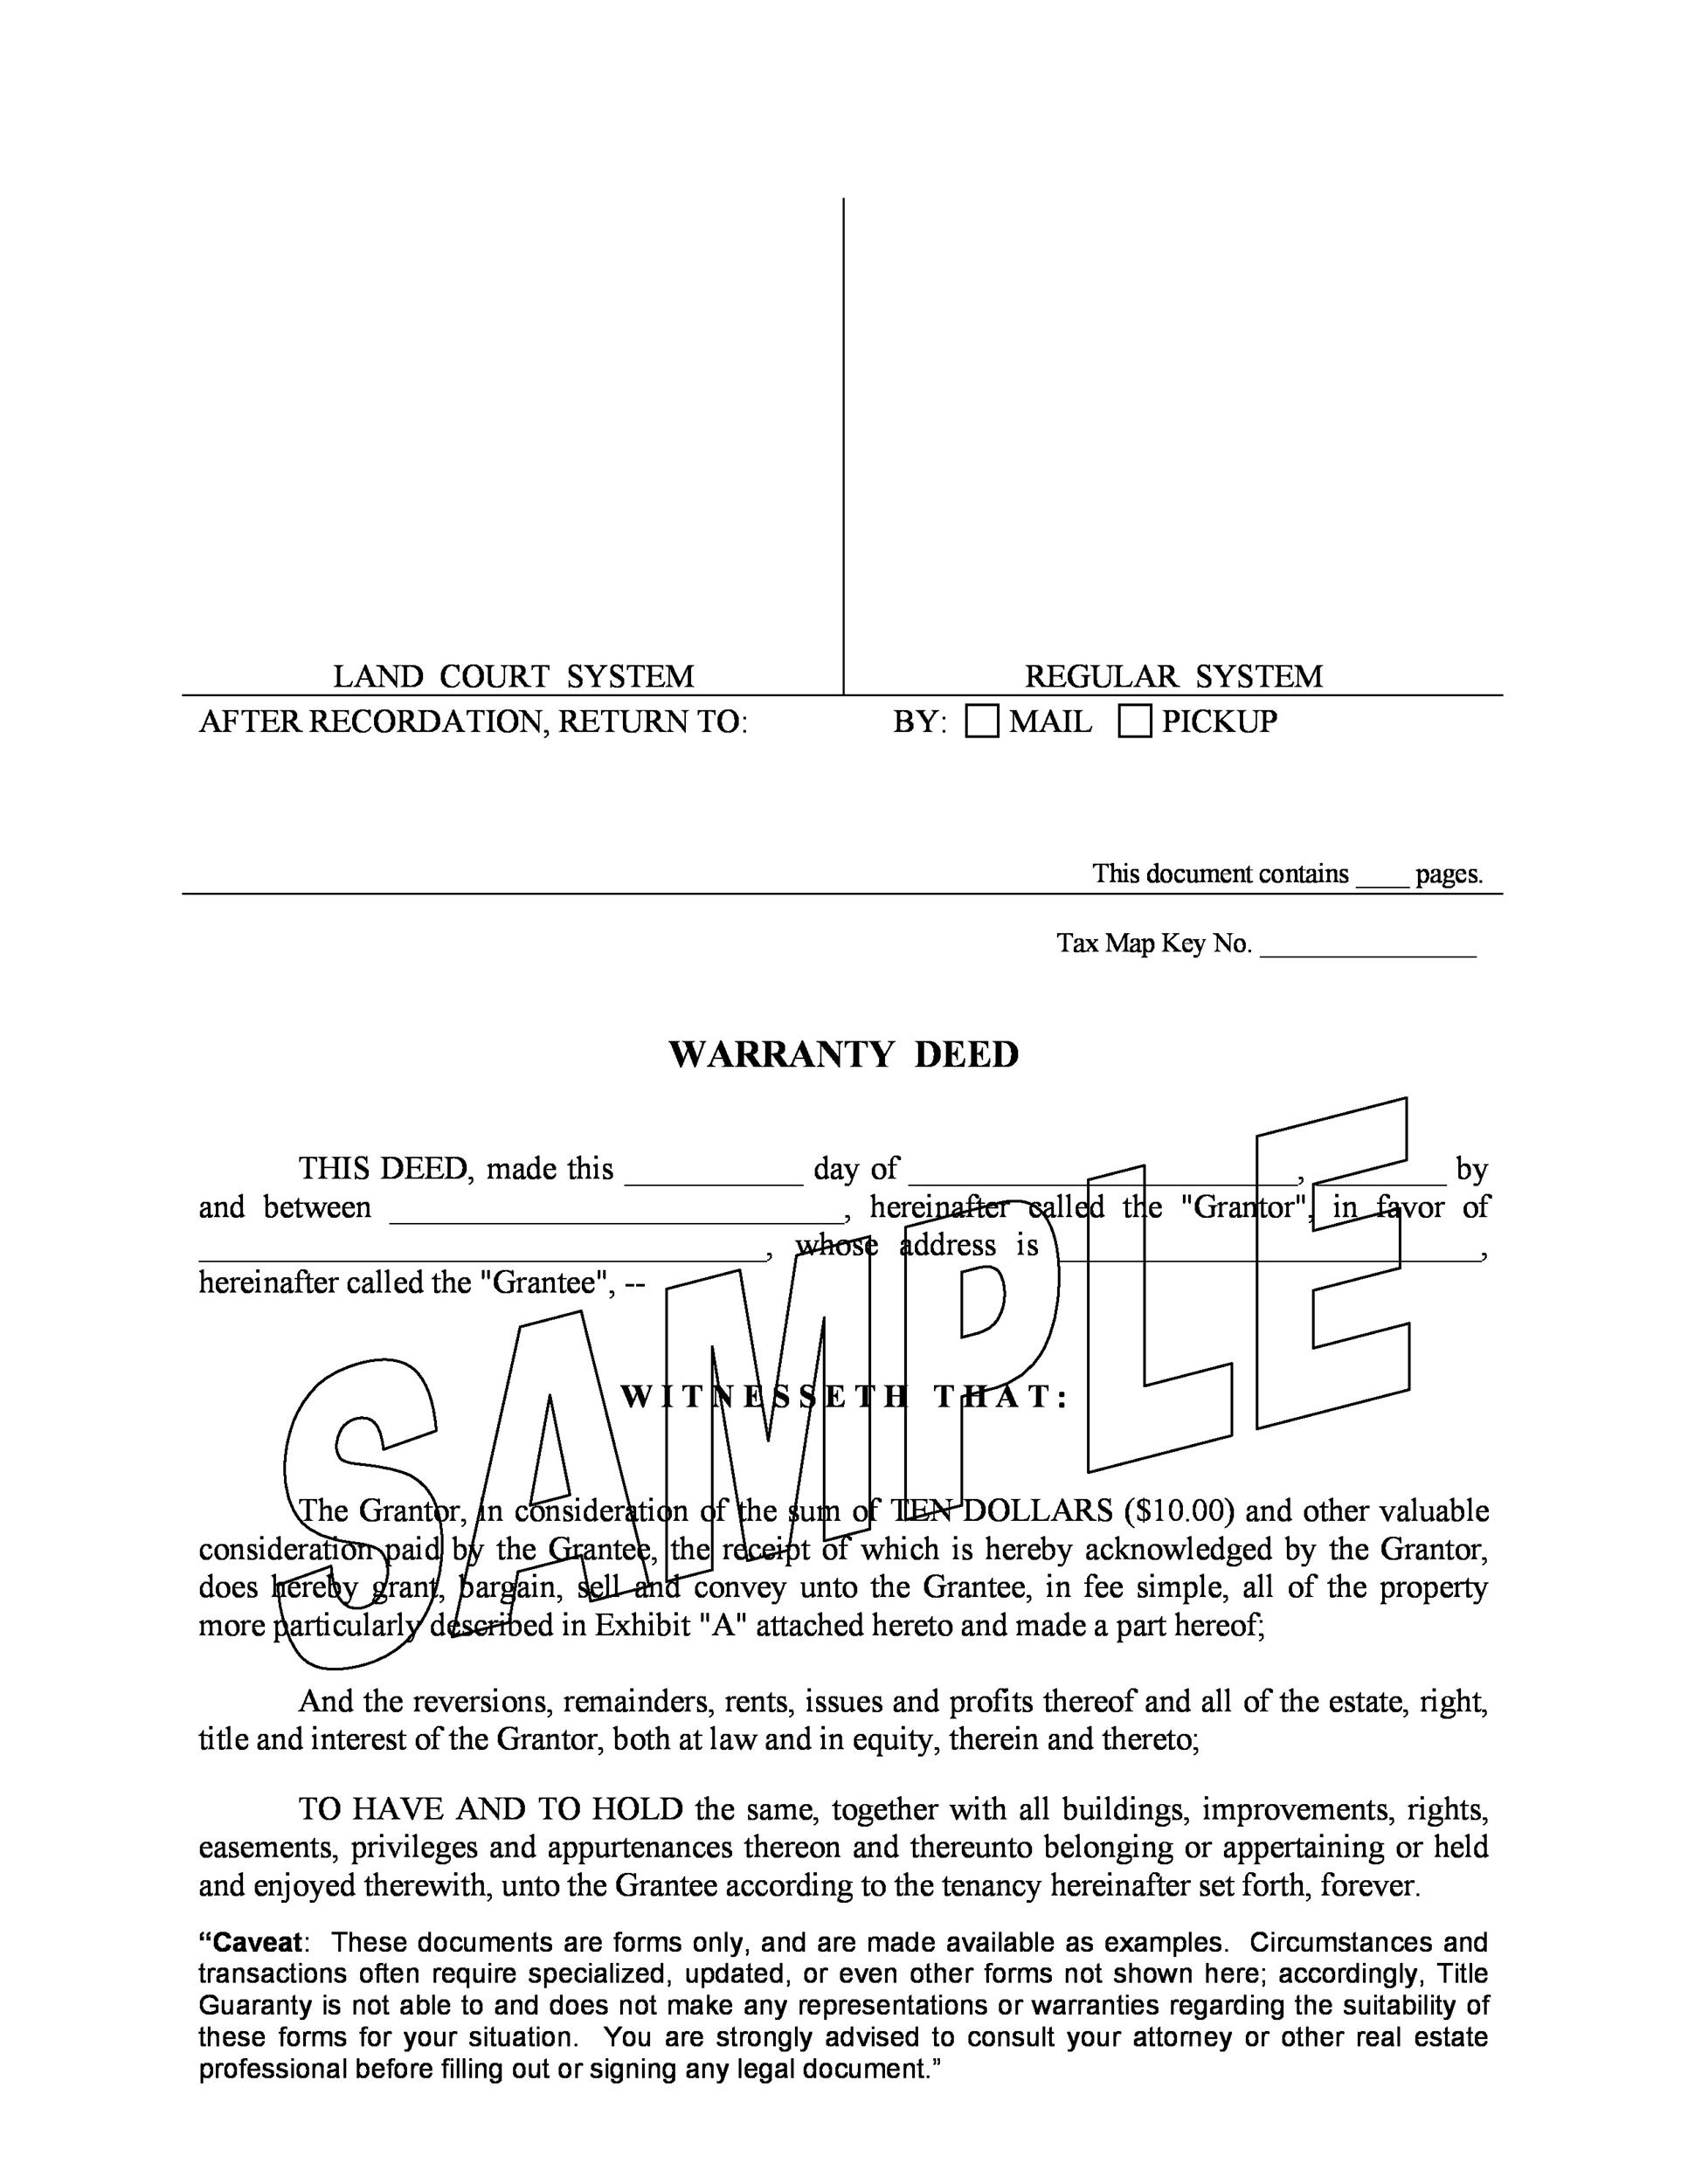 Free Warranty deed template 12